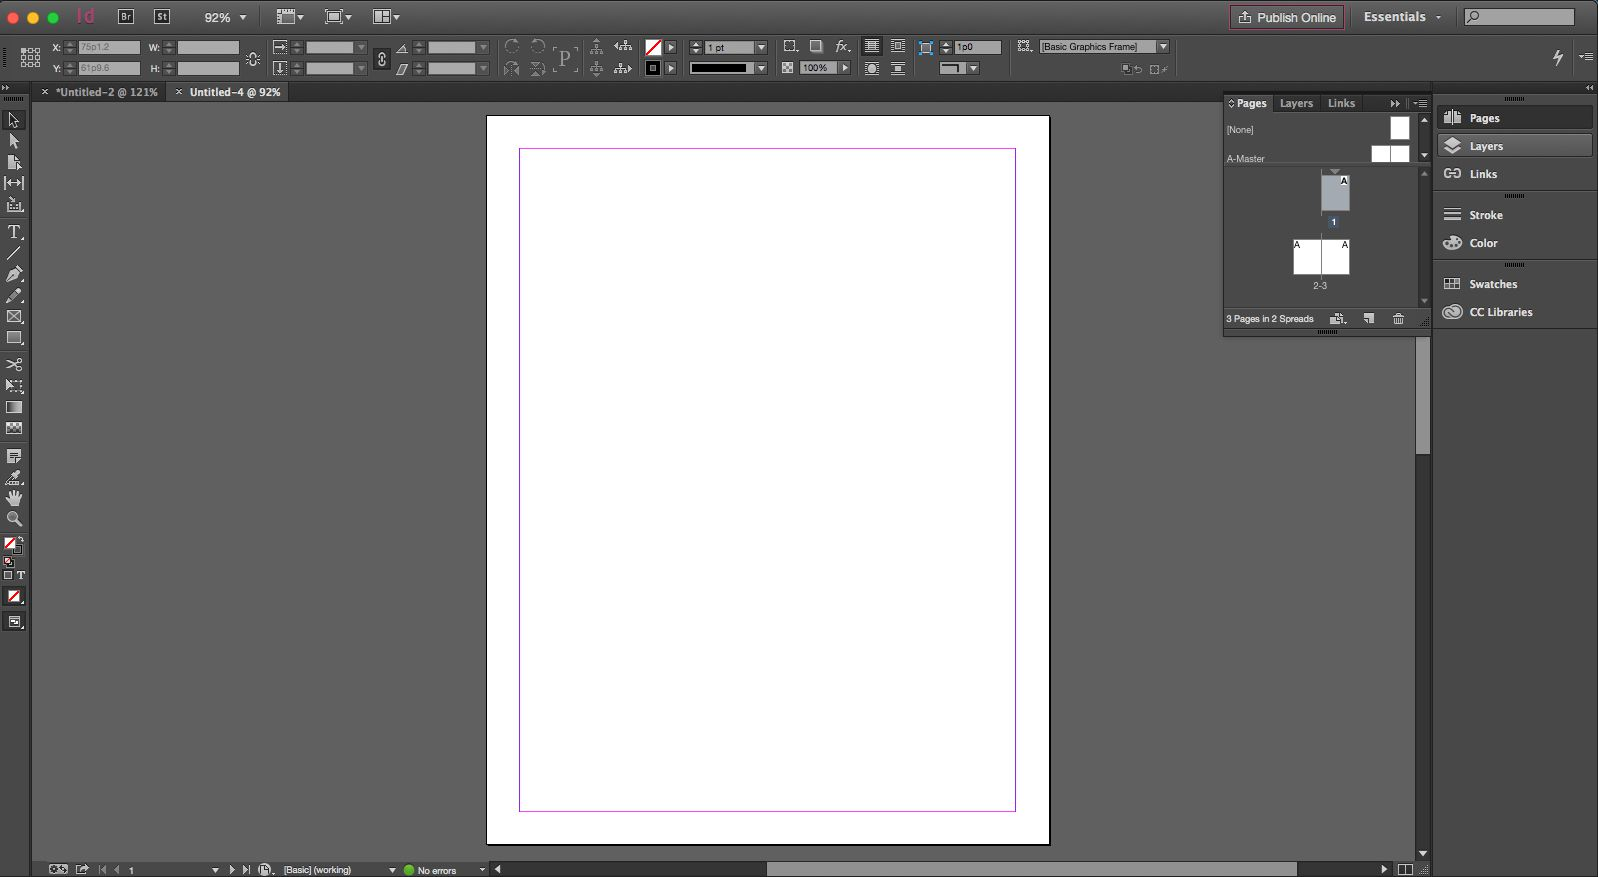 You start with a blank page or new document.